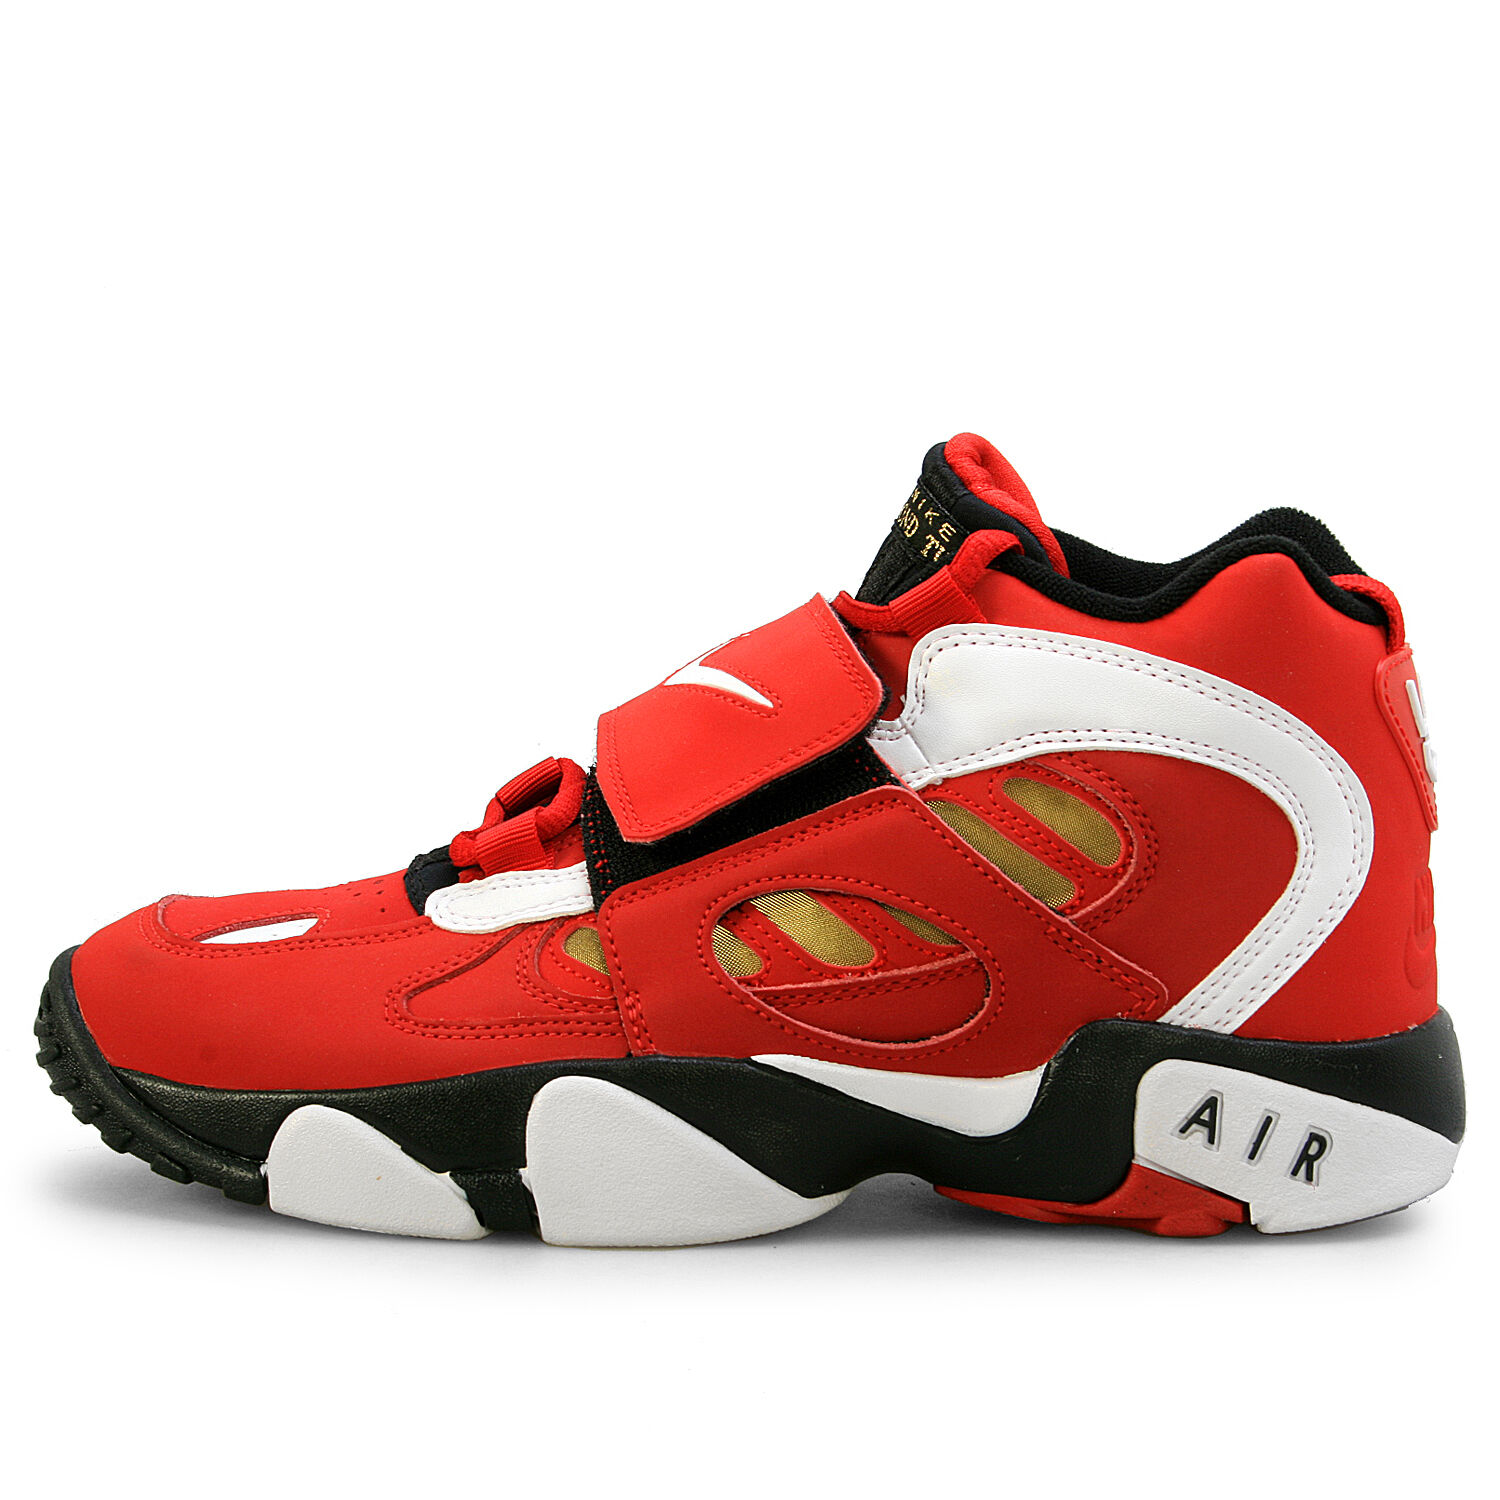 Nike Air Red/Gold Diamond Turf  II Red/Gold Air Men's Athletic Shoes Size 13 756c2e